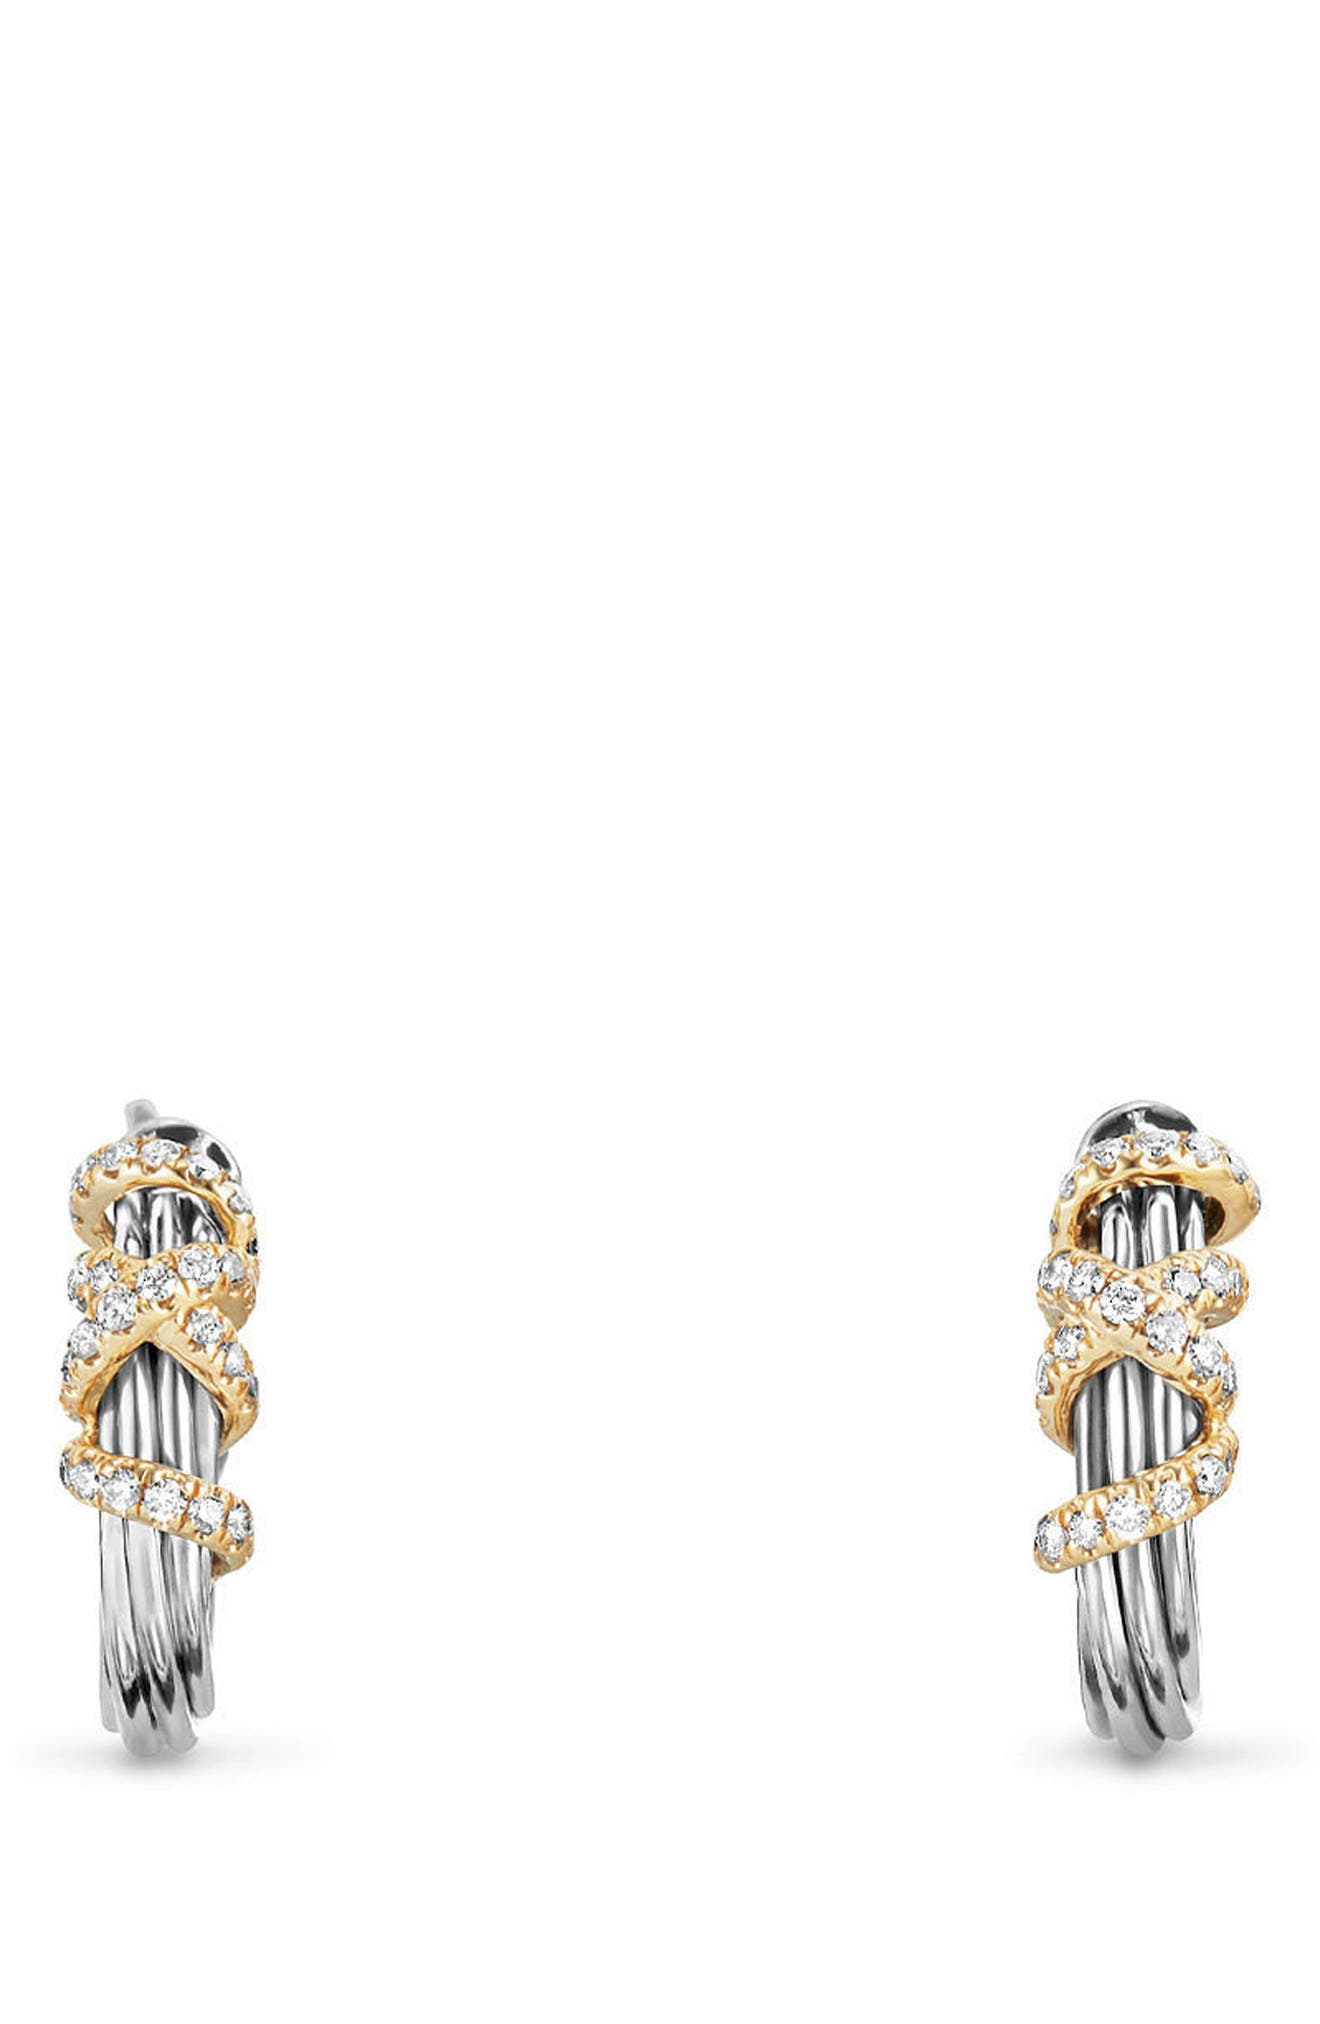 Helena Small Hoop Earrings with Diamonds & 18K Gold,                             Main thumbnail 1, color,                             SILVER/ GOLD